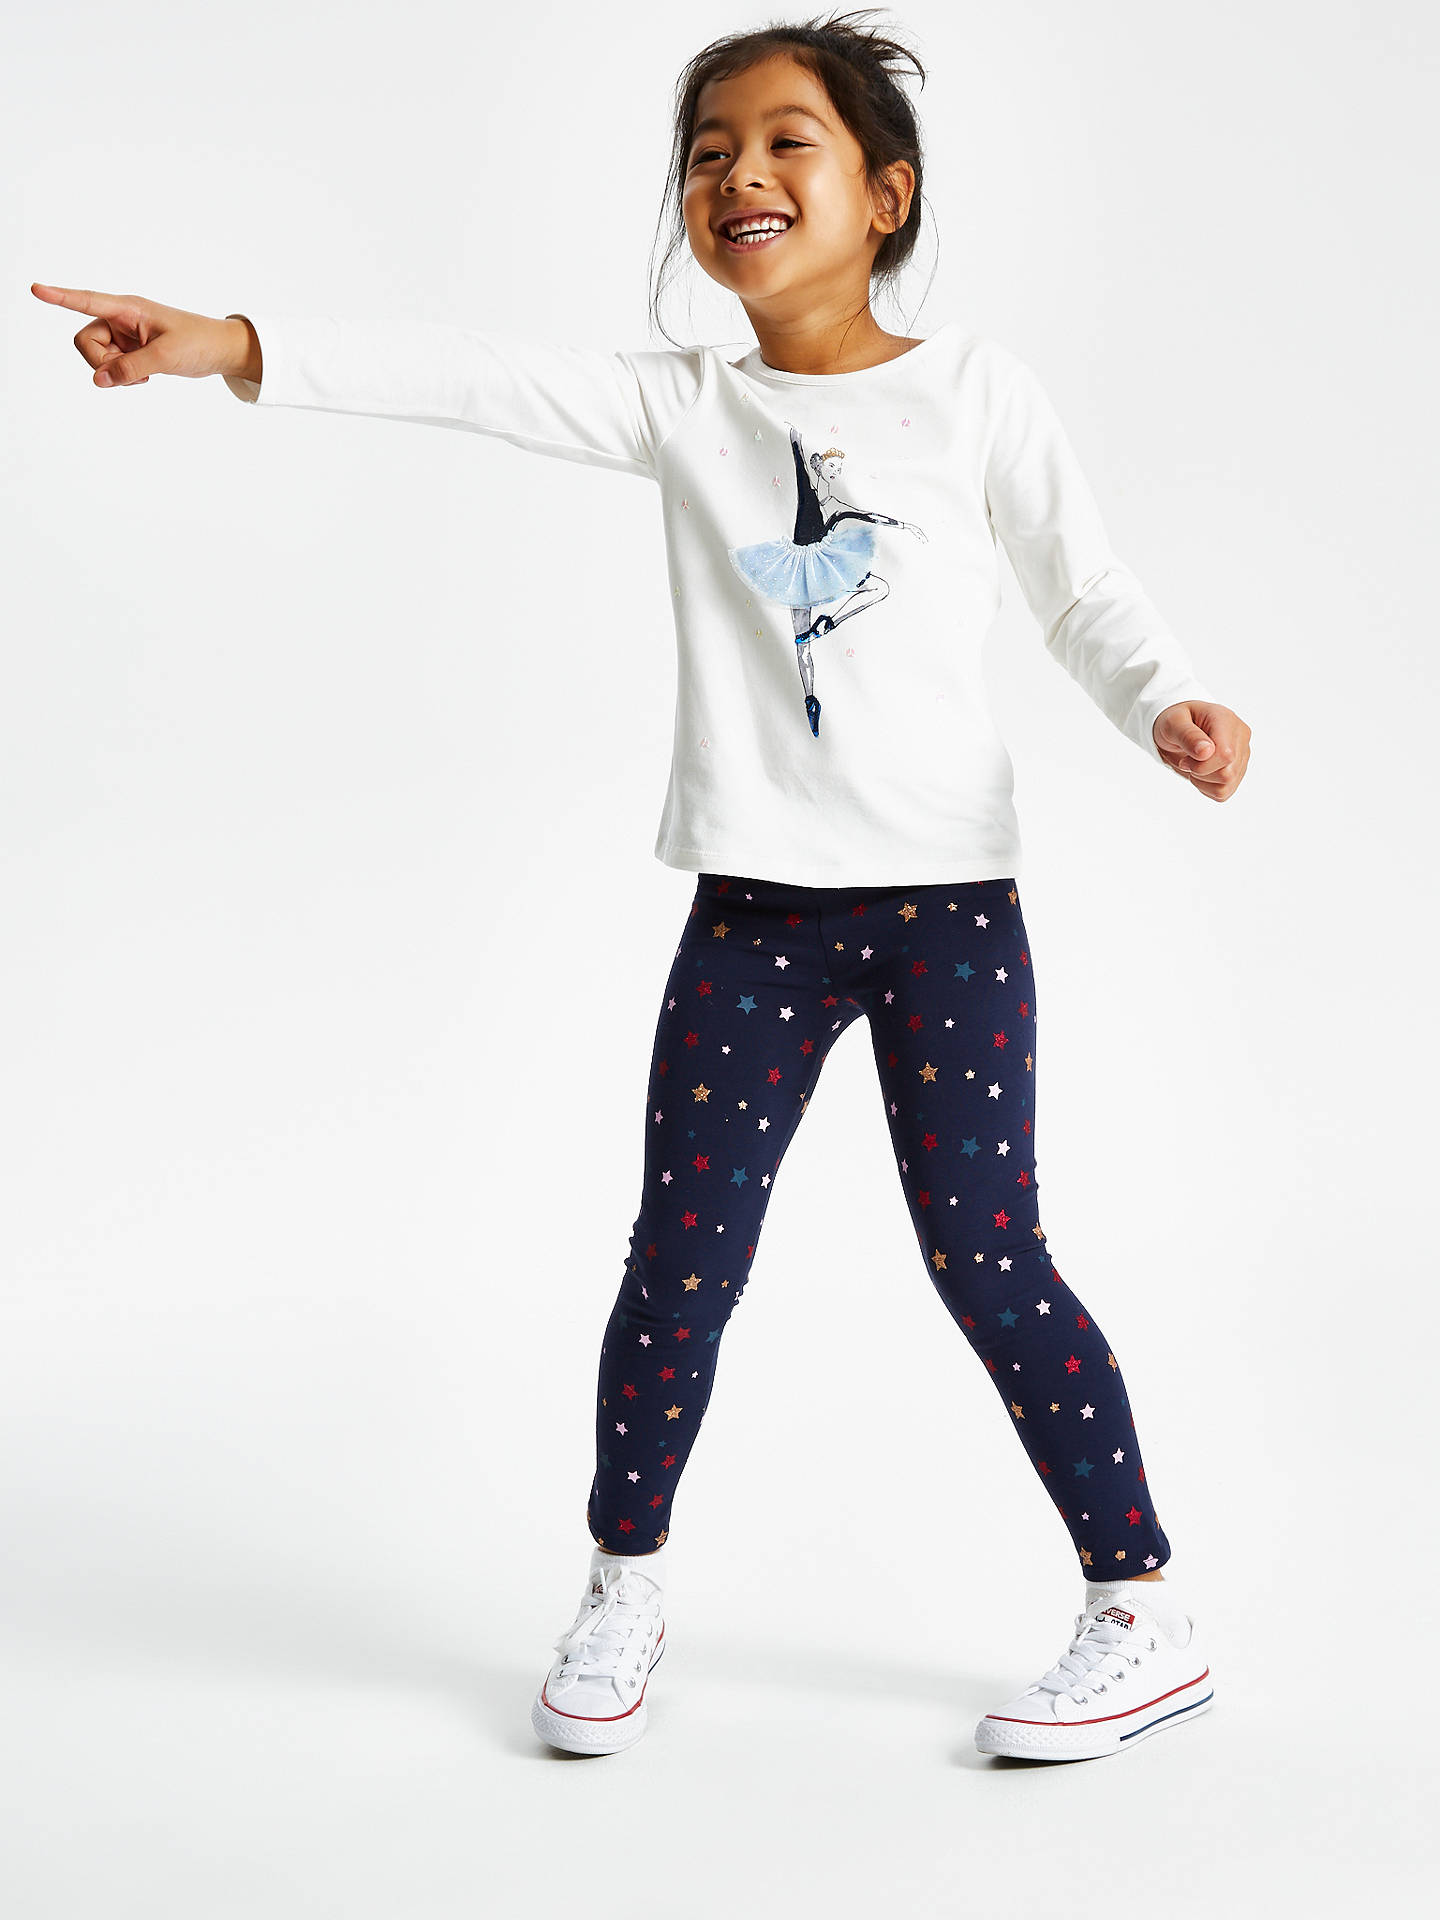 Buy John Lewis & Partners Girls' Star Print Leggings, Navy, 4 years Online at johnlewis.com